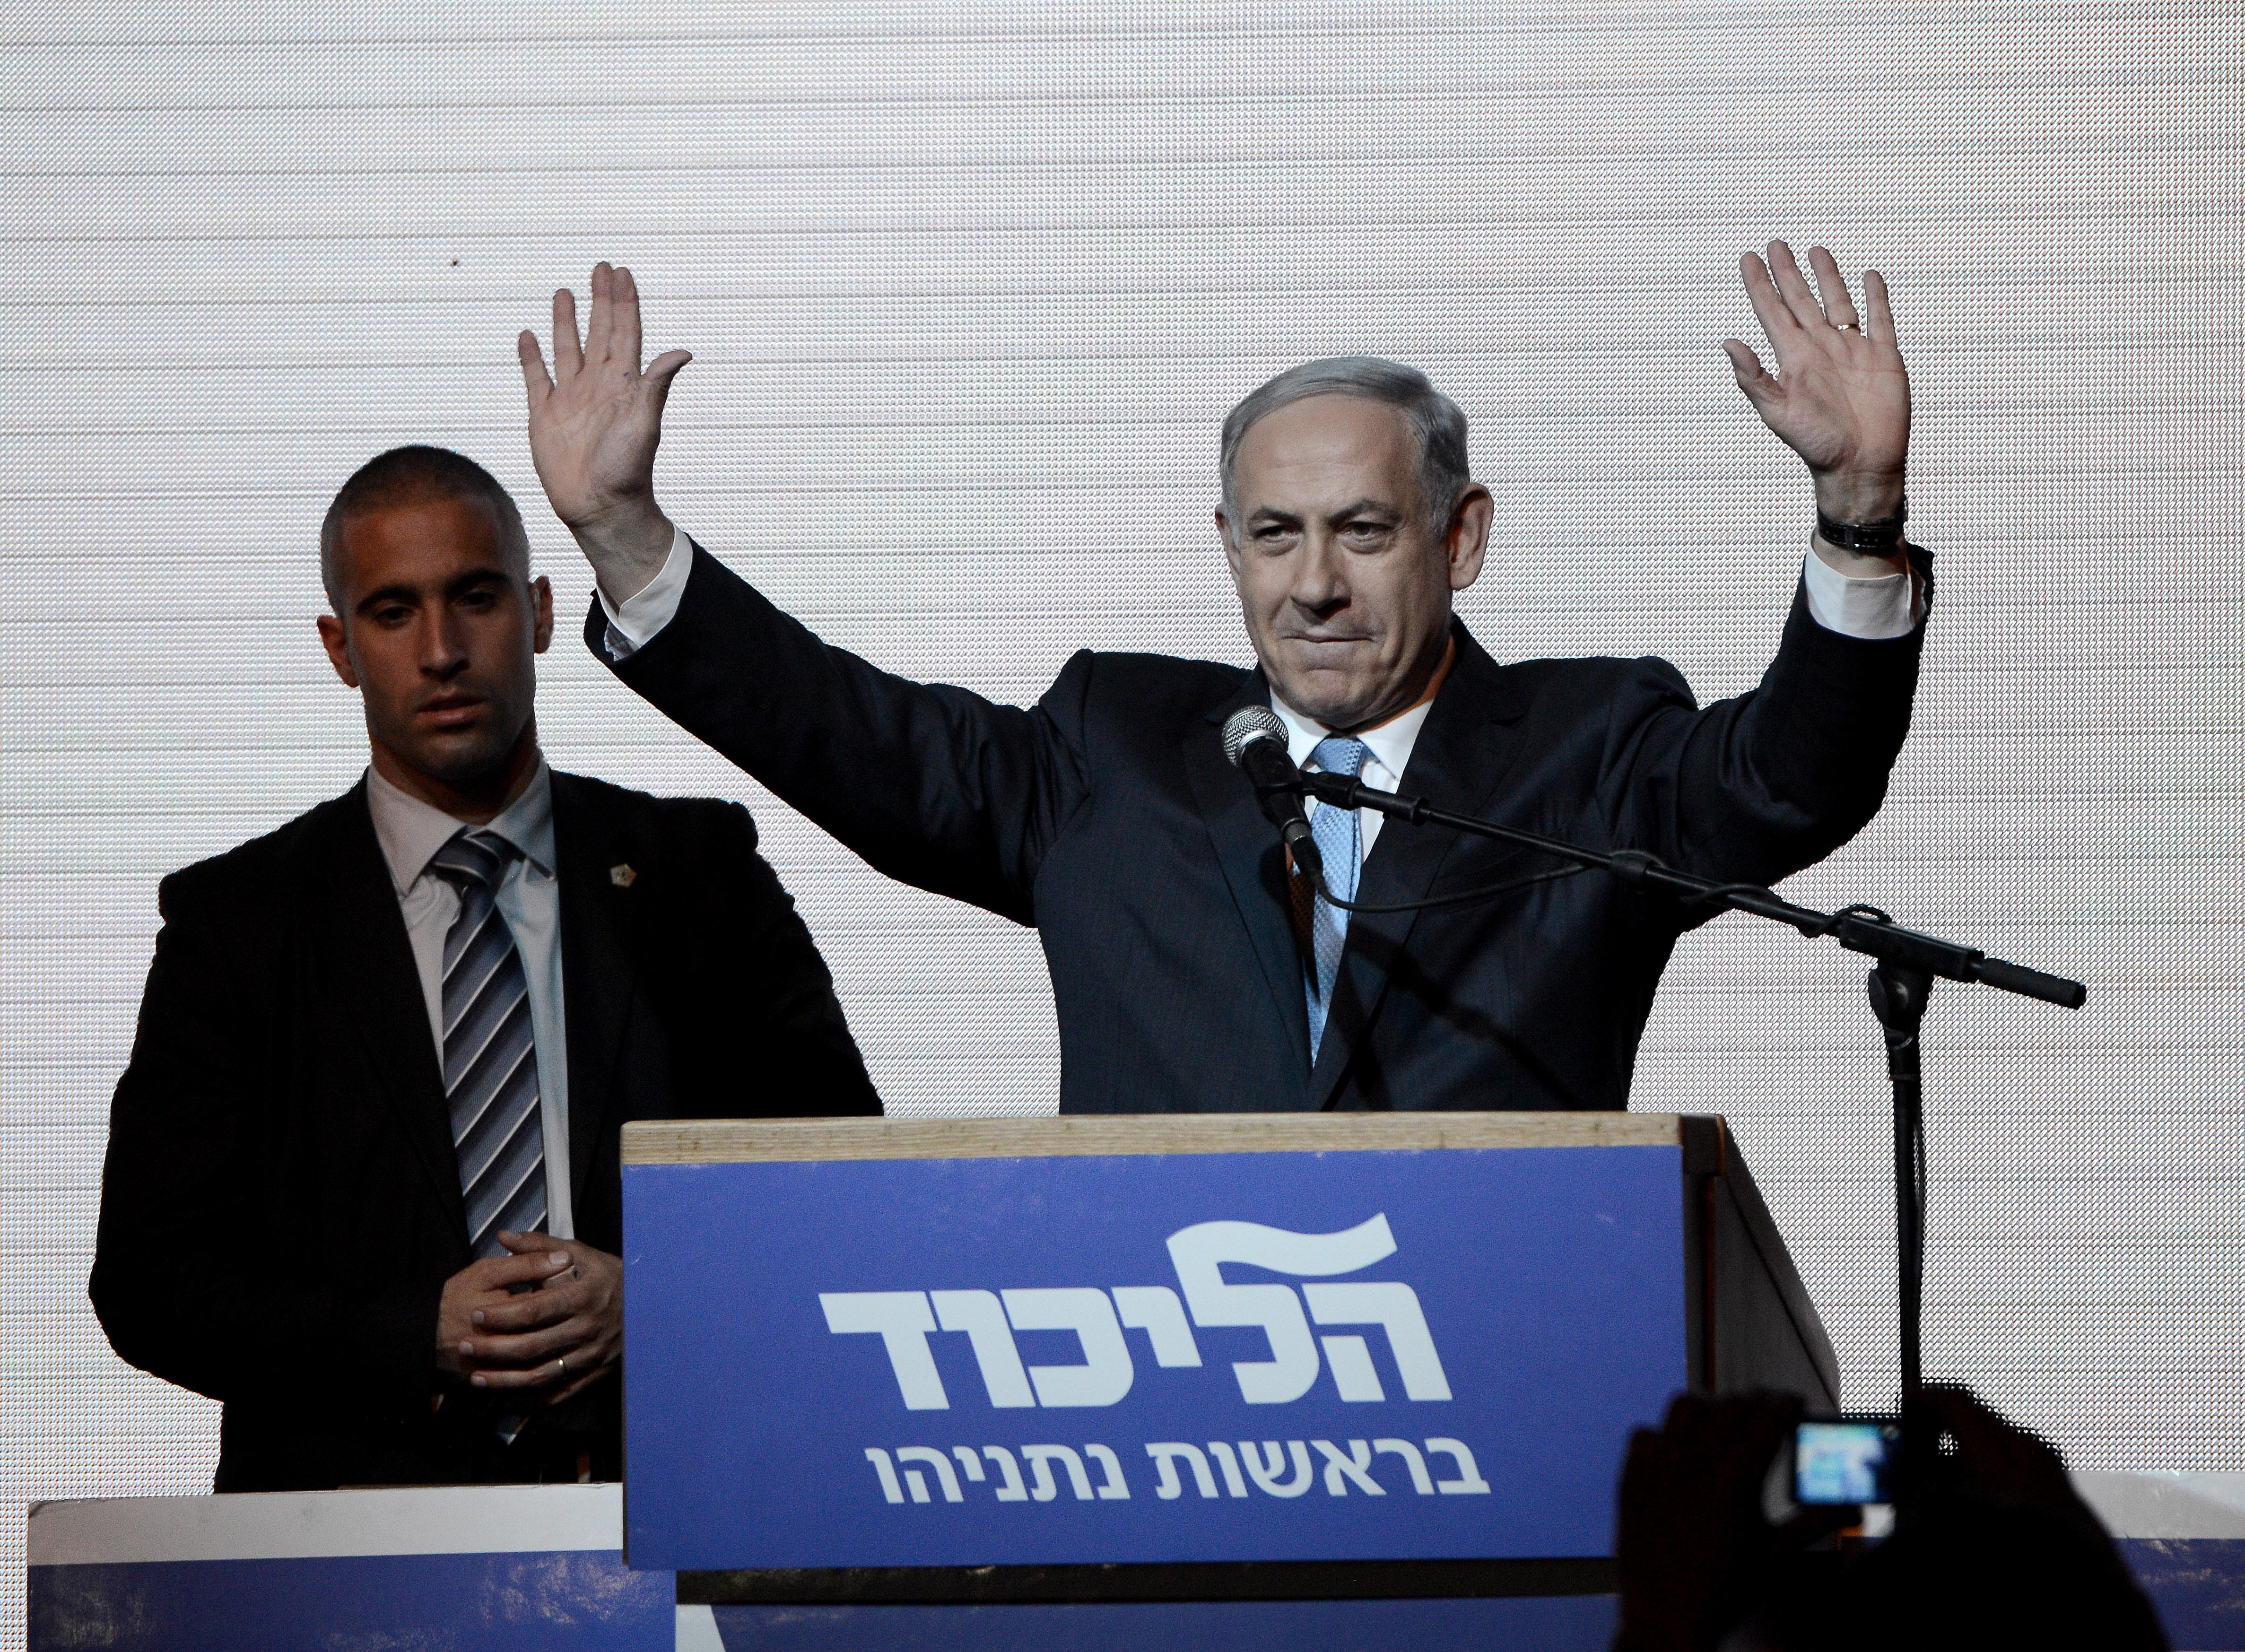 Israeli Prime Minister and the leader of the Likud Party Benjamin Netanyahu greets supporters at the party's election headquarters after the first results of the Israeli general election on March 18, 2015